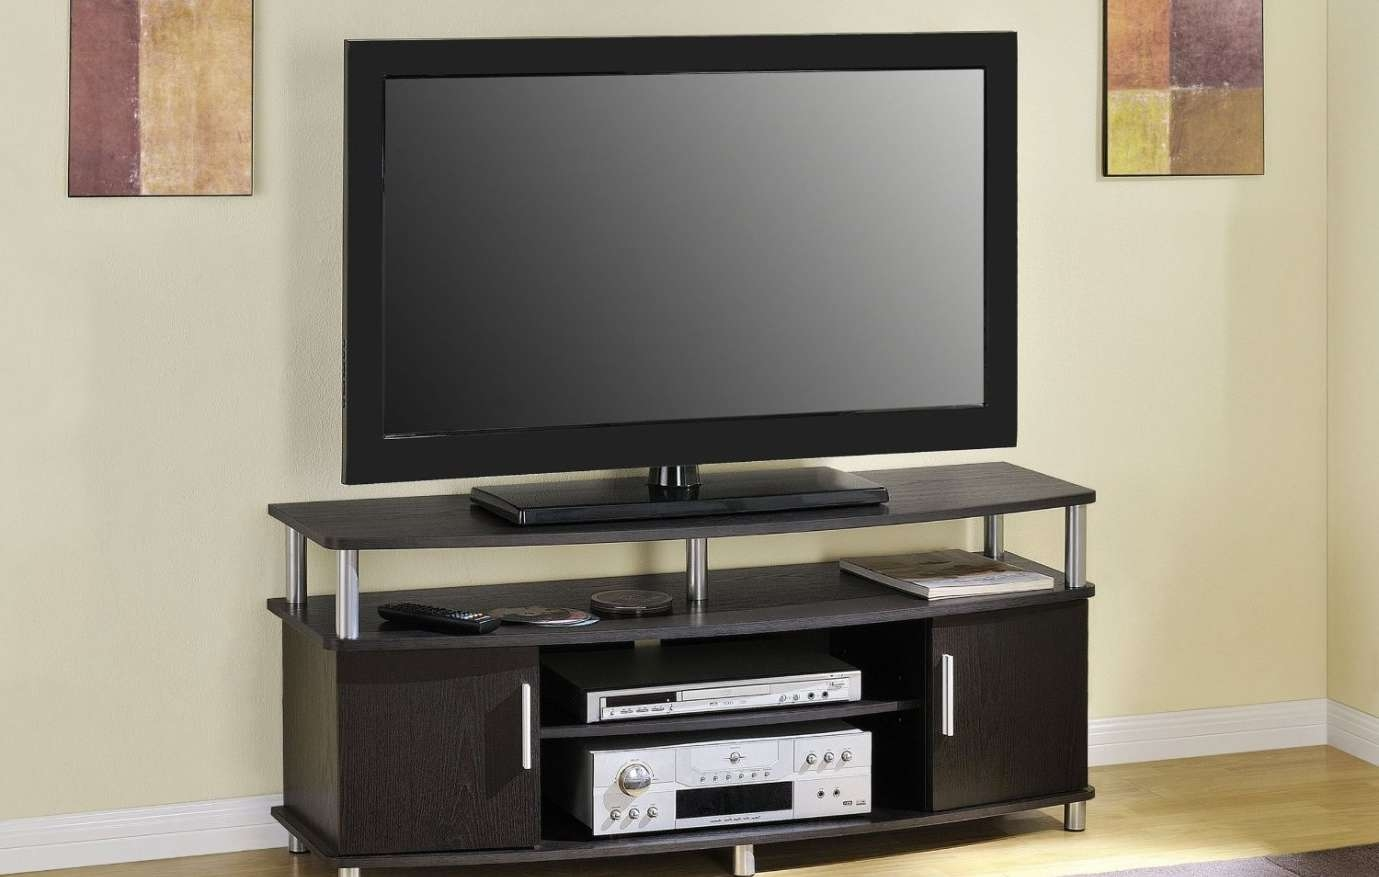 Tv : Interesting Unique Tv Stands For Flat Screens Outstanding Intended For Contemporary Tv Stands For Flat Screens (View 11 of 15)